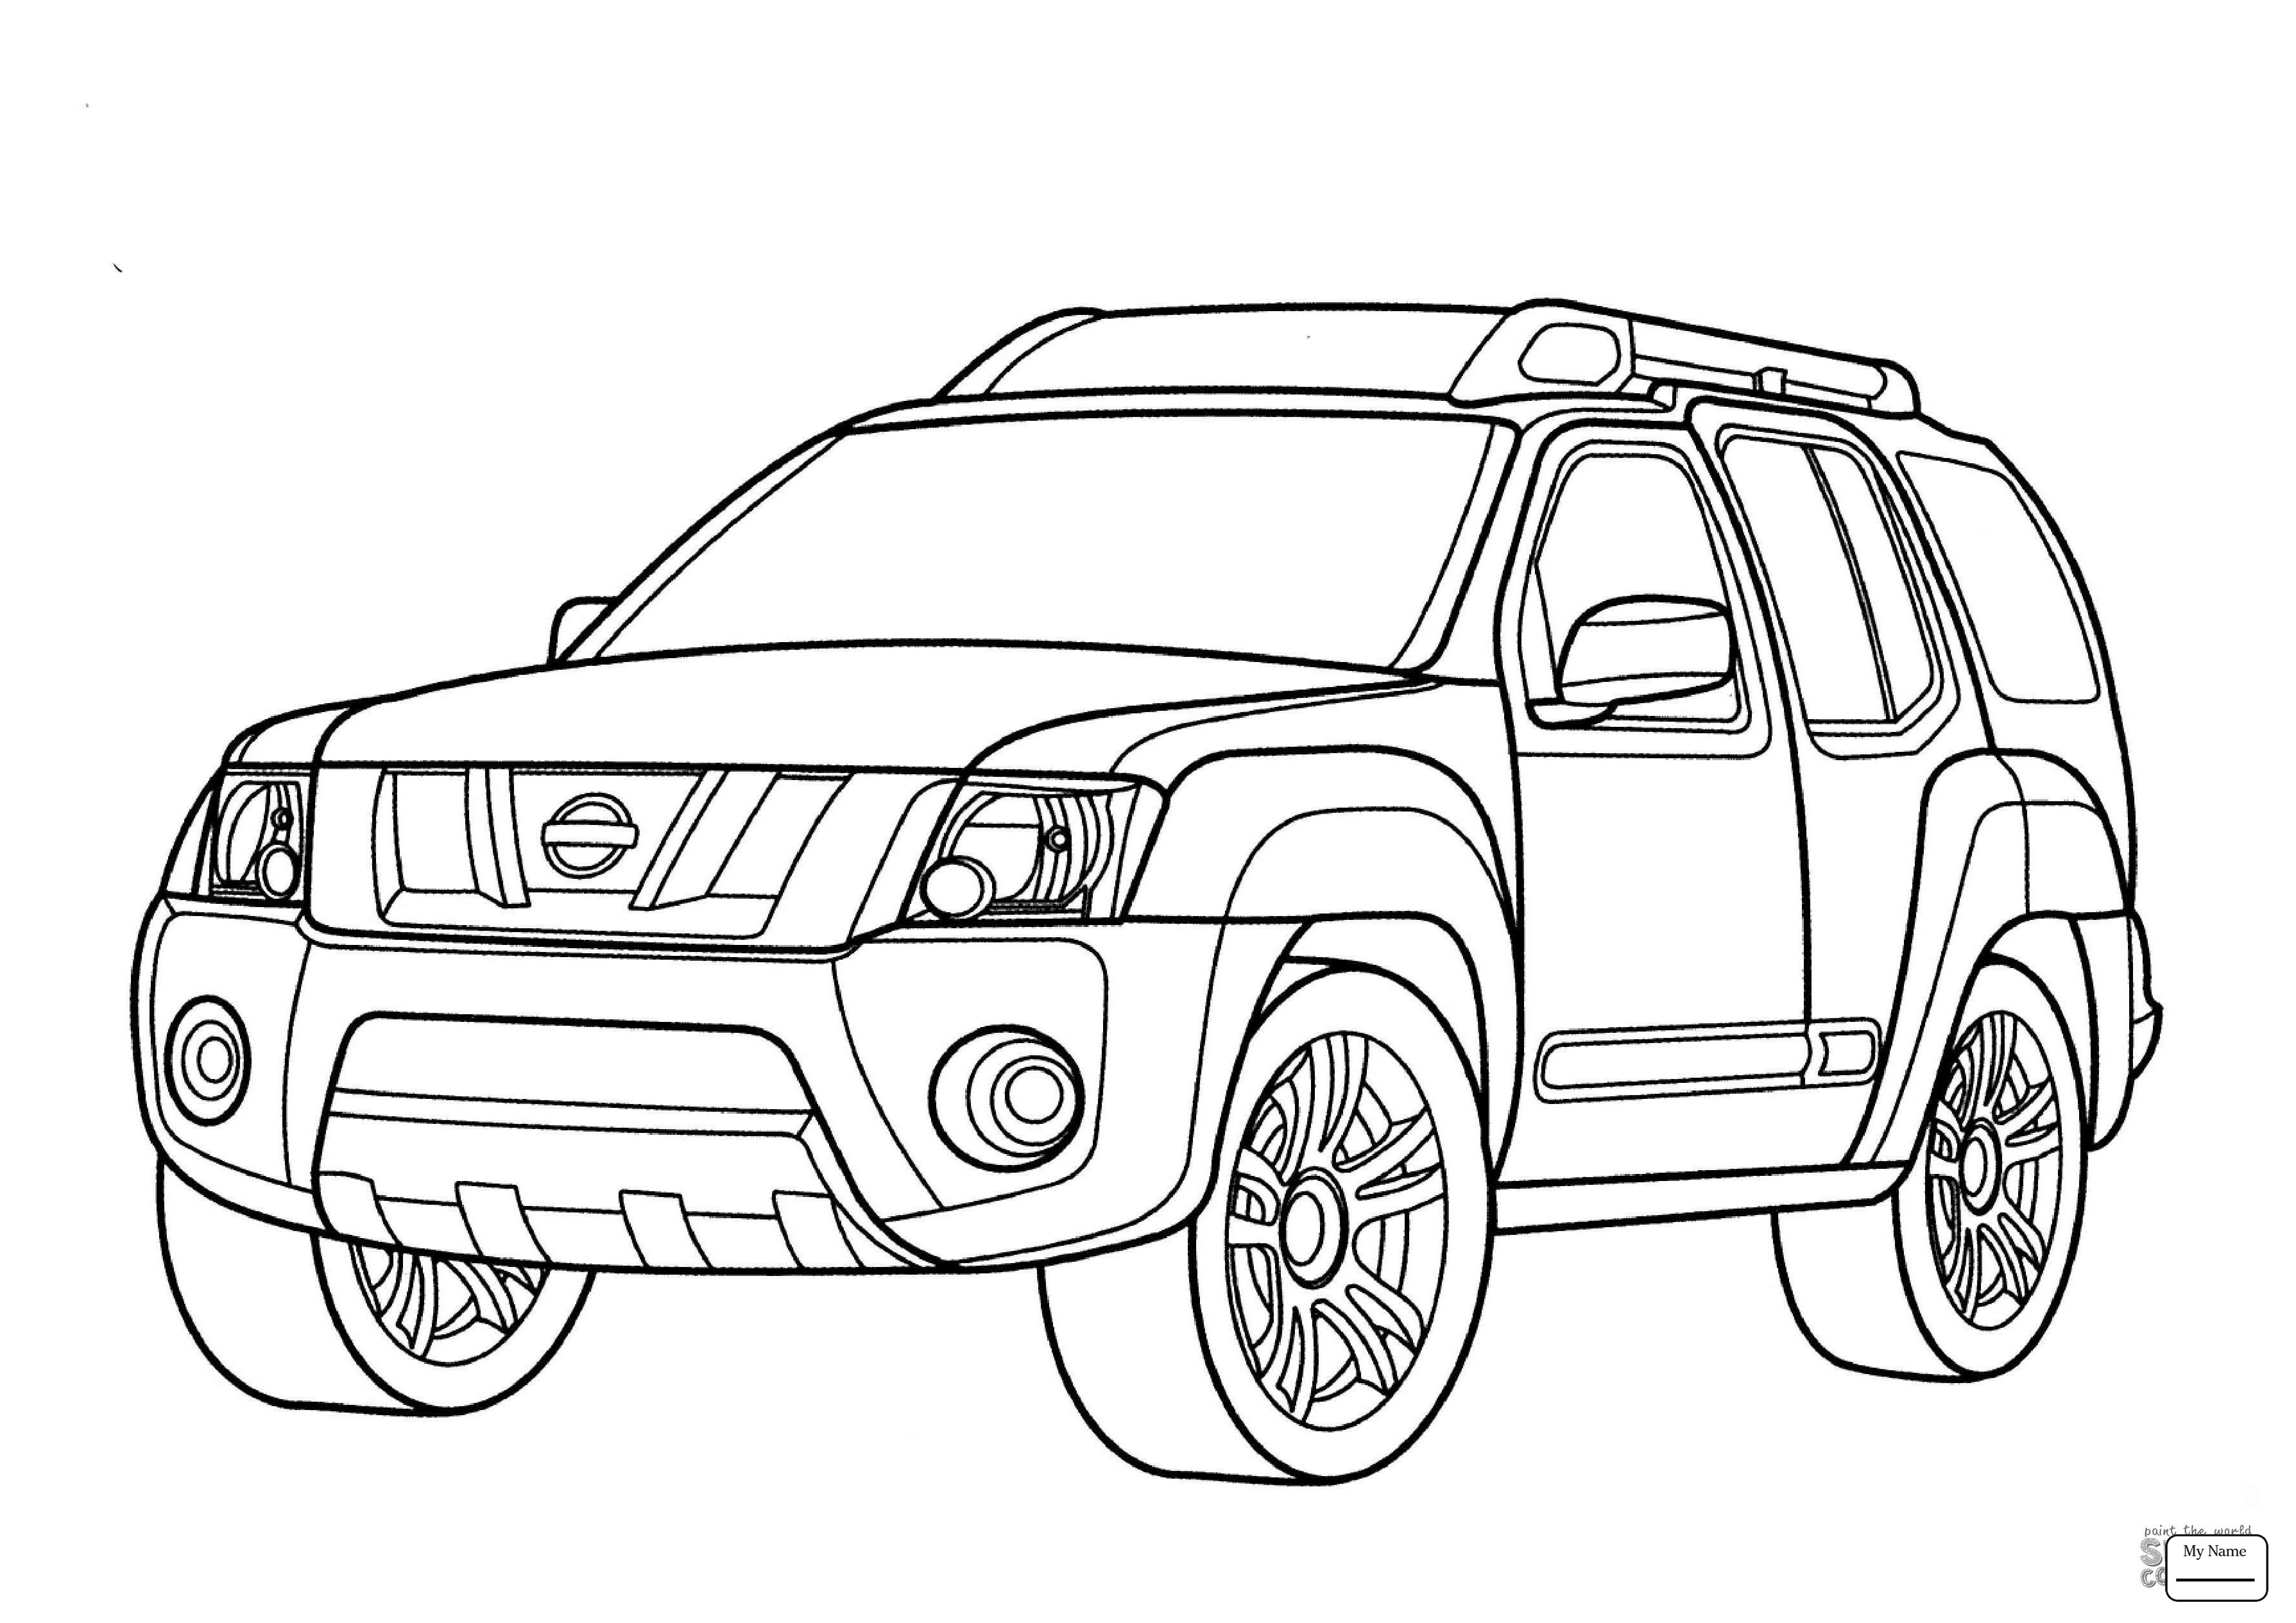 Toyota Coloring Pages At Getcolorings